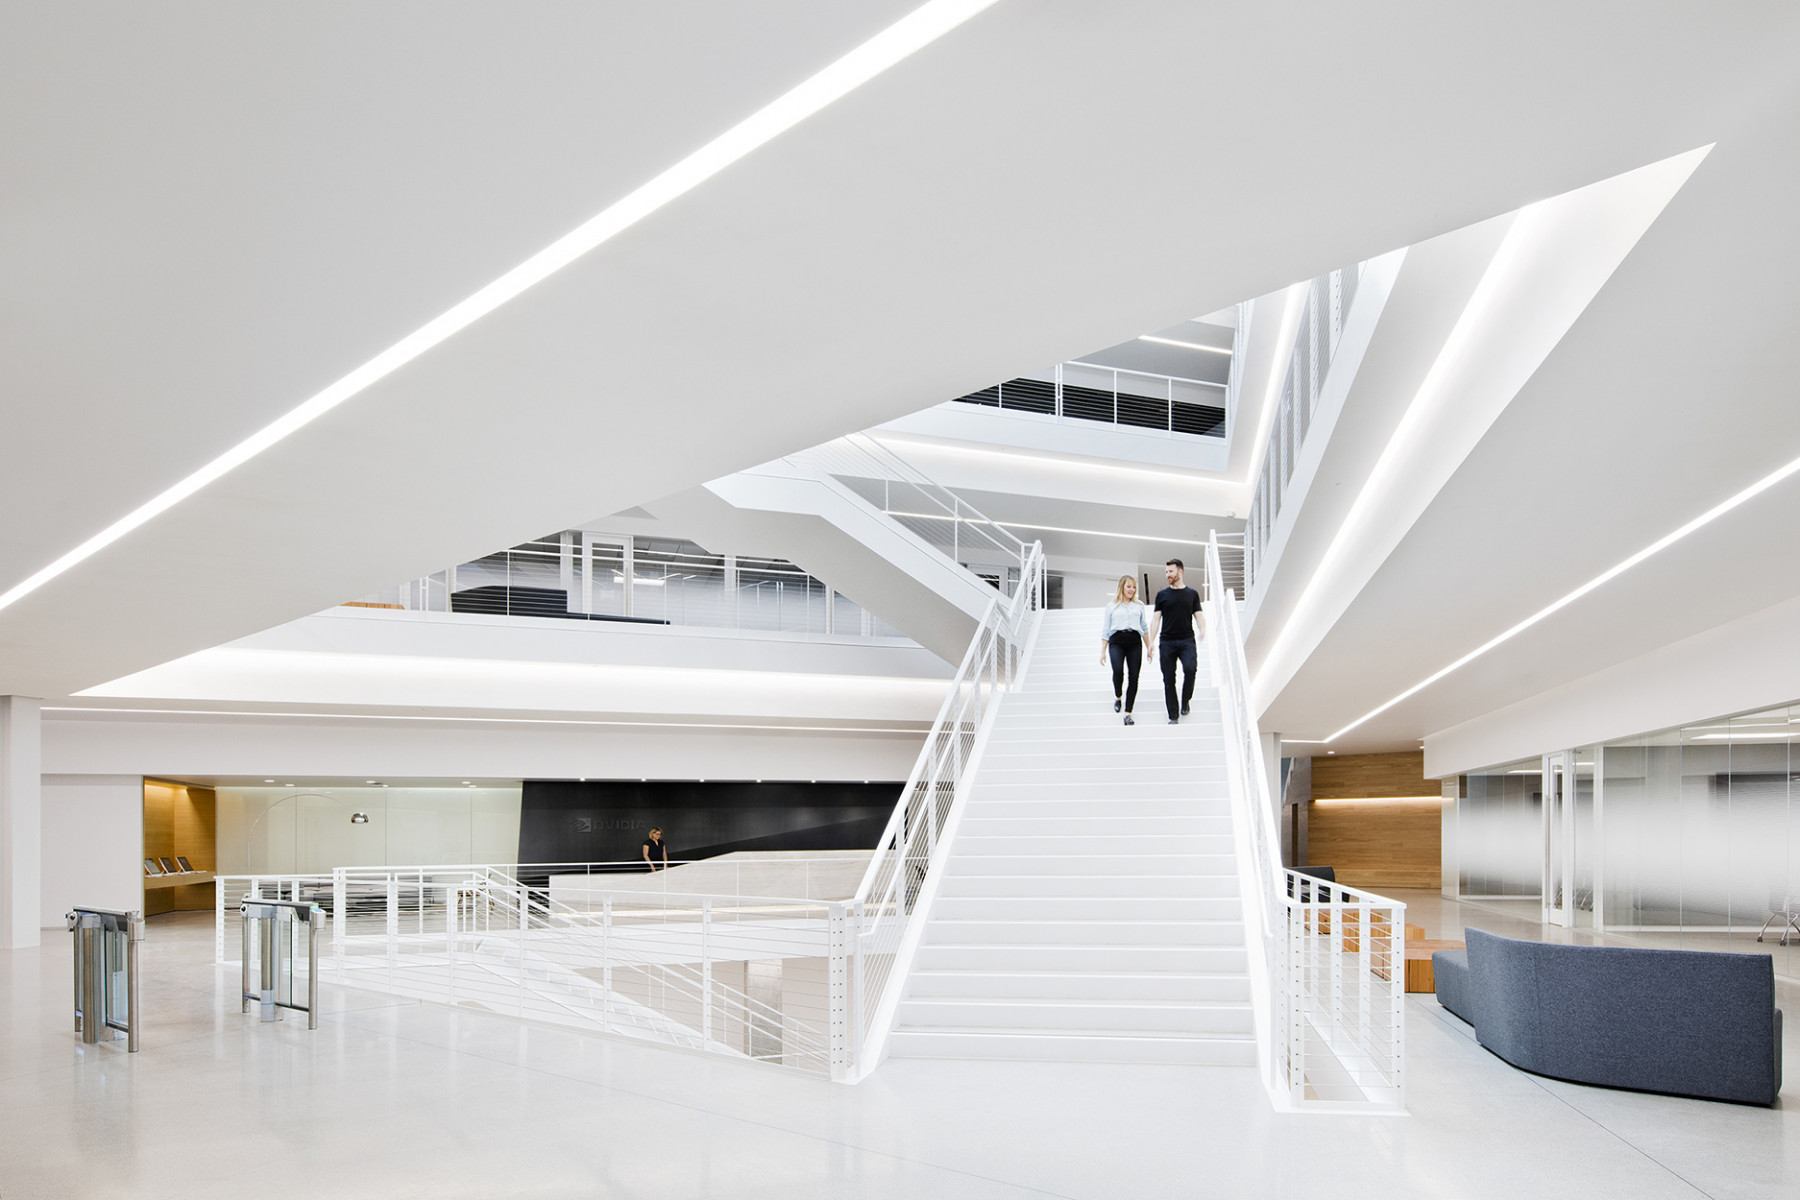 NVIDIA Headquarters by Gensler